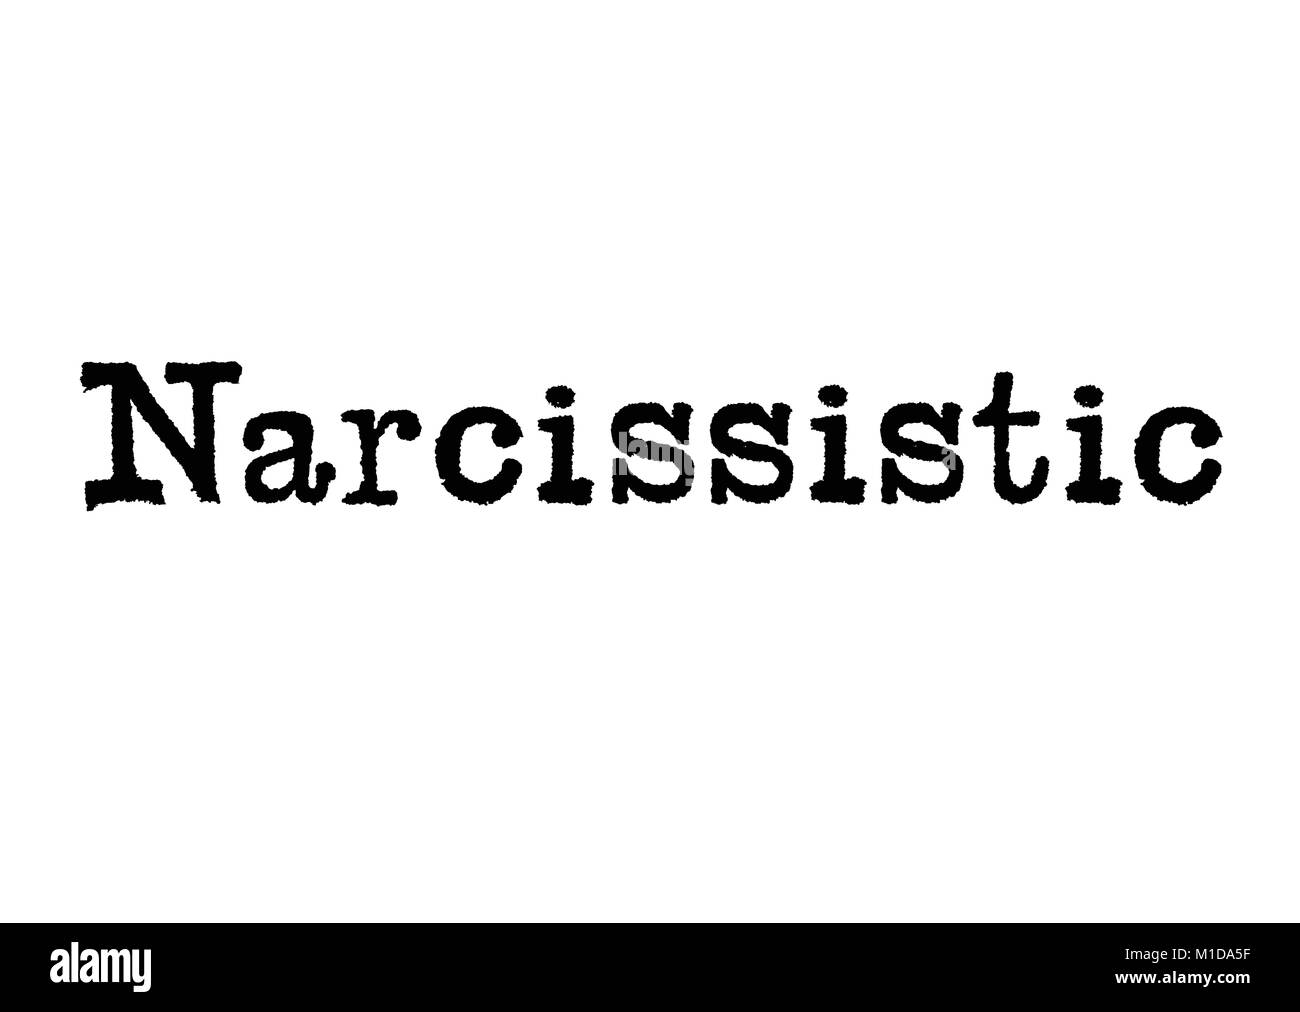 The word Narcissistic from a typewriter on a white background - Stock Image